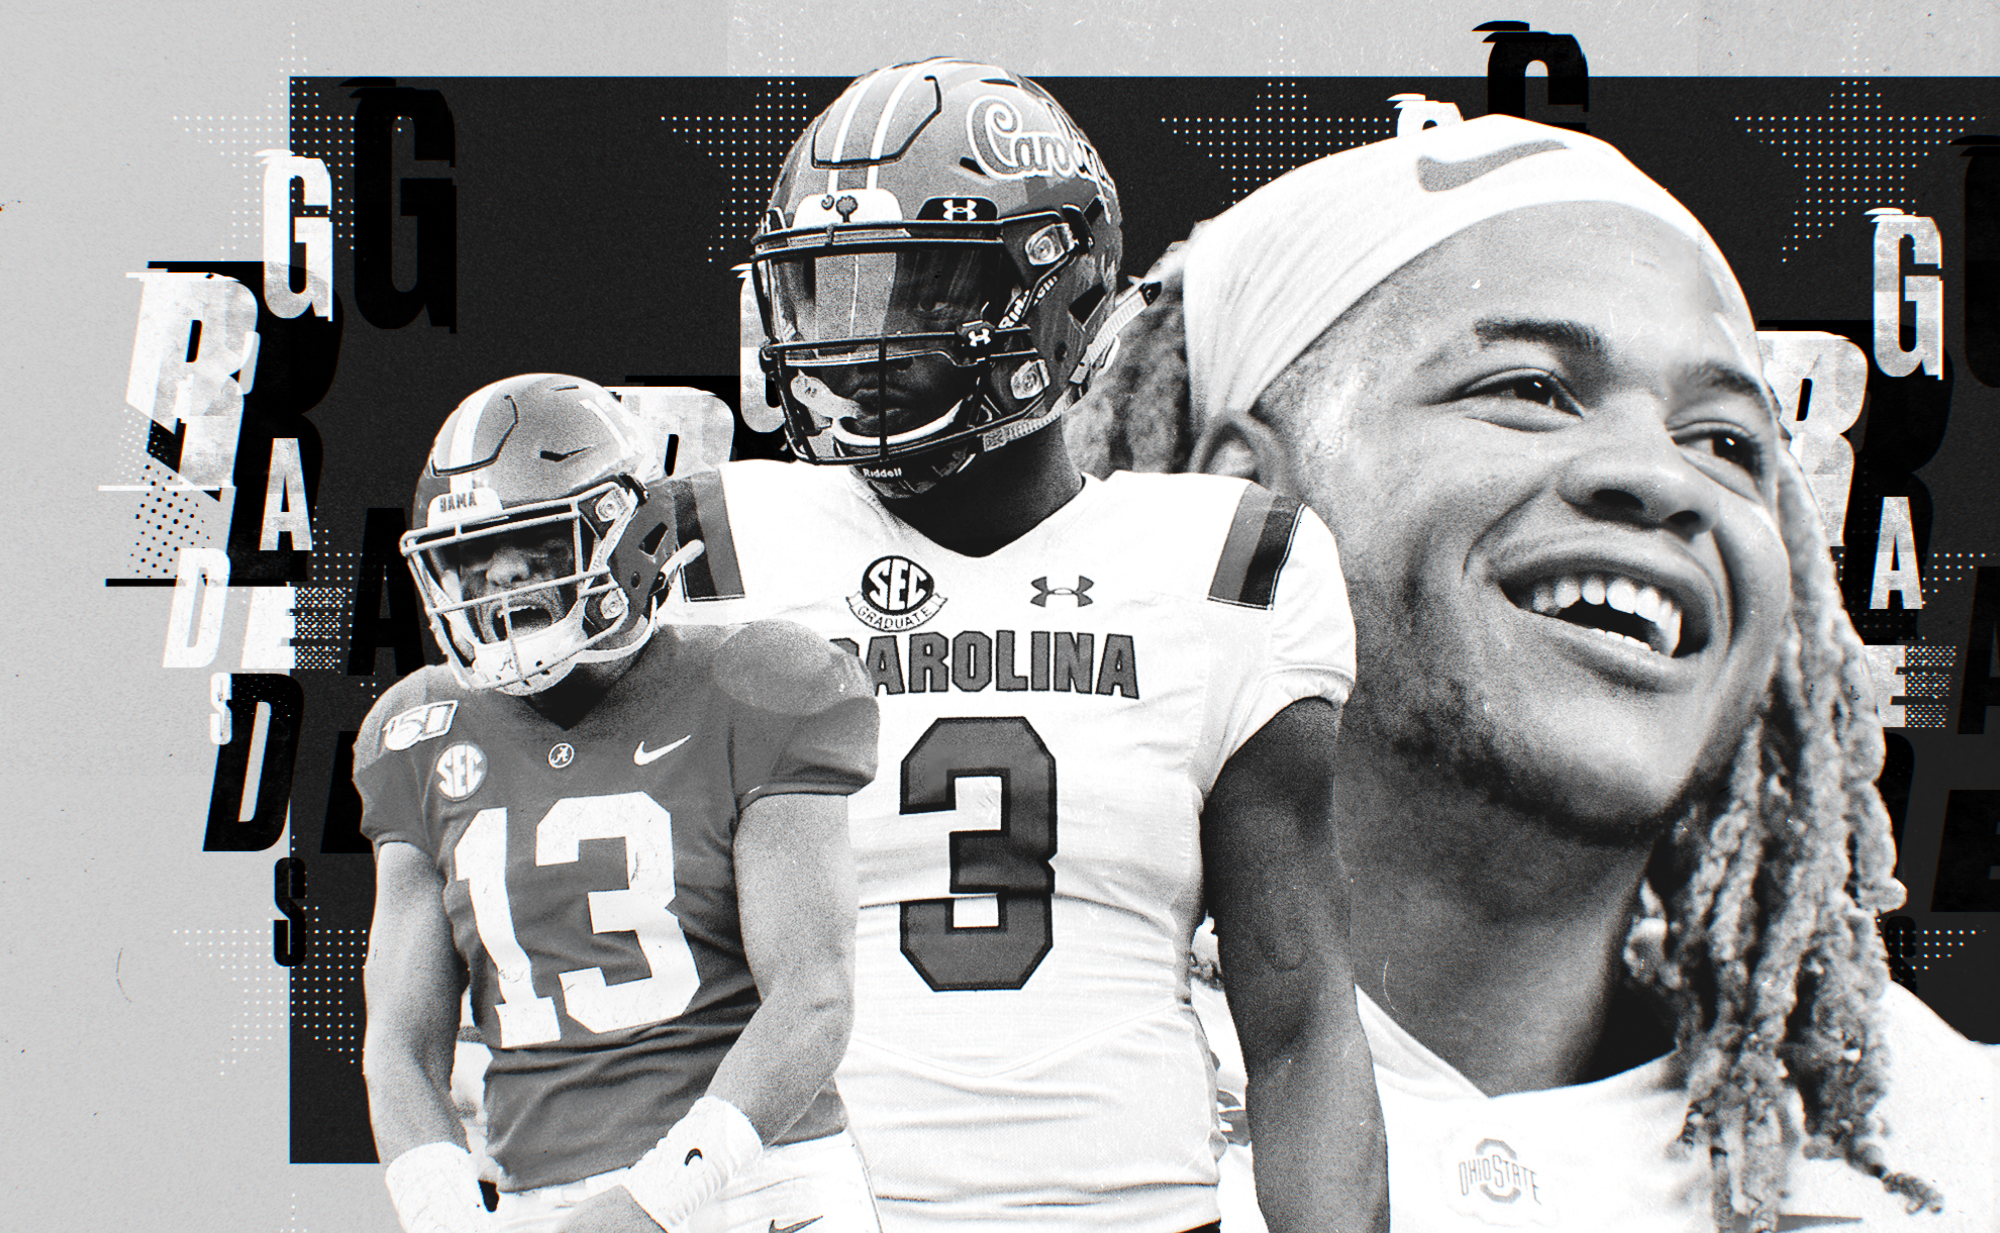 """A black and white collage of NFL Draft picks Tua Tagovailoa, Javon Kinlaw, and Chase Young, with the word """"grades"""" in the background"""